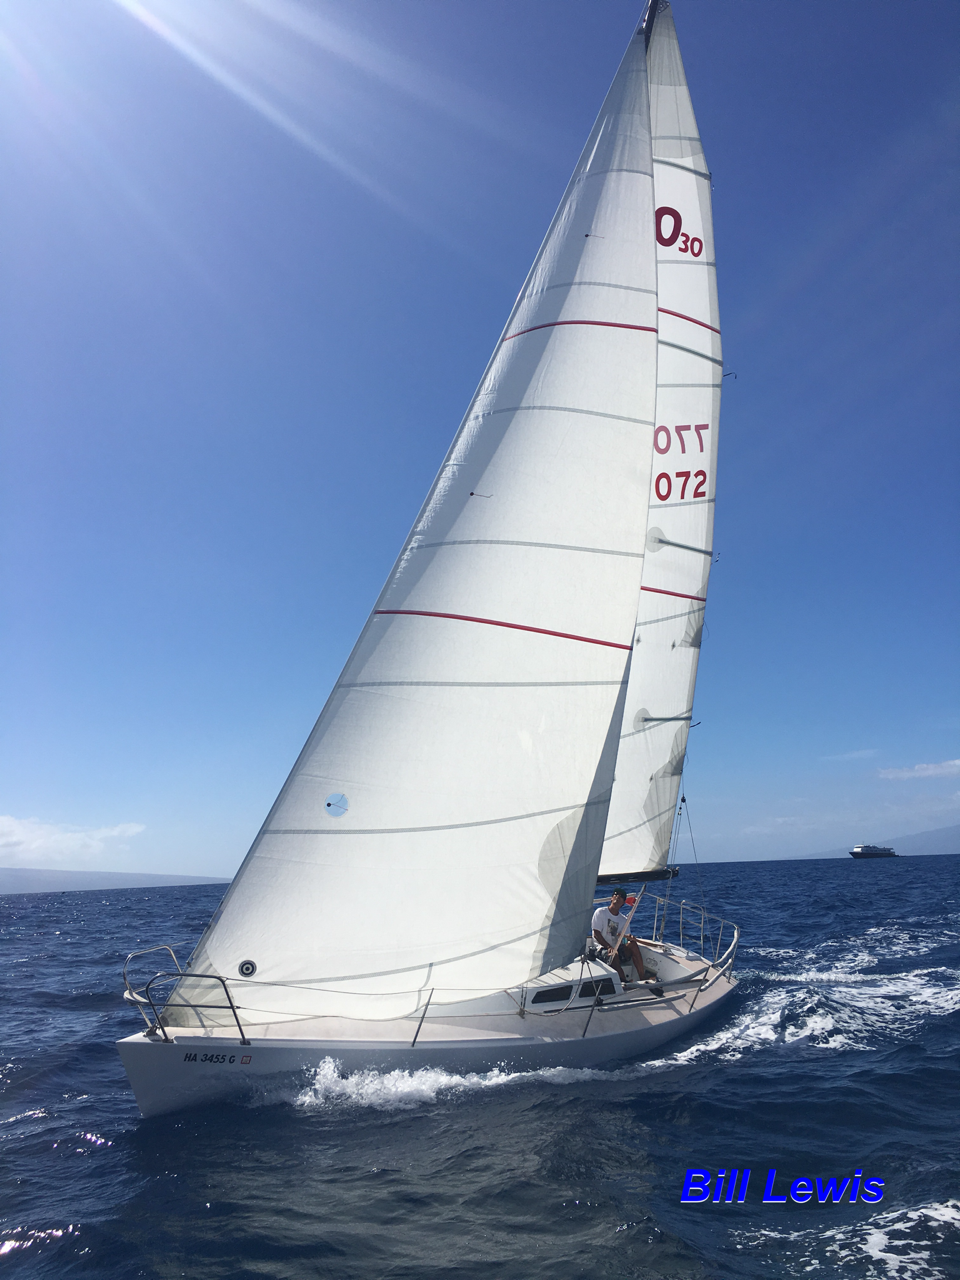 """The Olson 30 is back on the water and looking beautiful - March 2017  The Lahaina Yacht Club is proud to announce the unveiling of our new Olson 30 yacht!   """"Lele"""""""